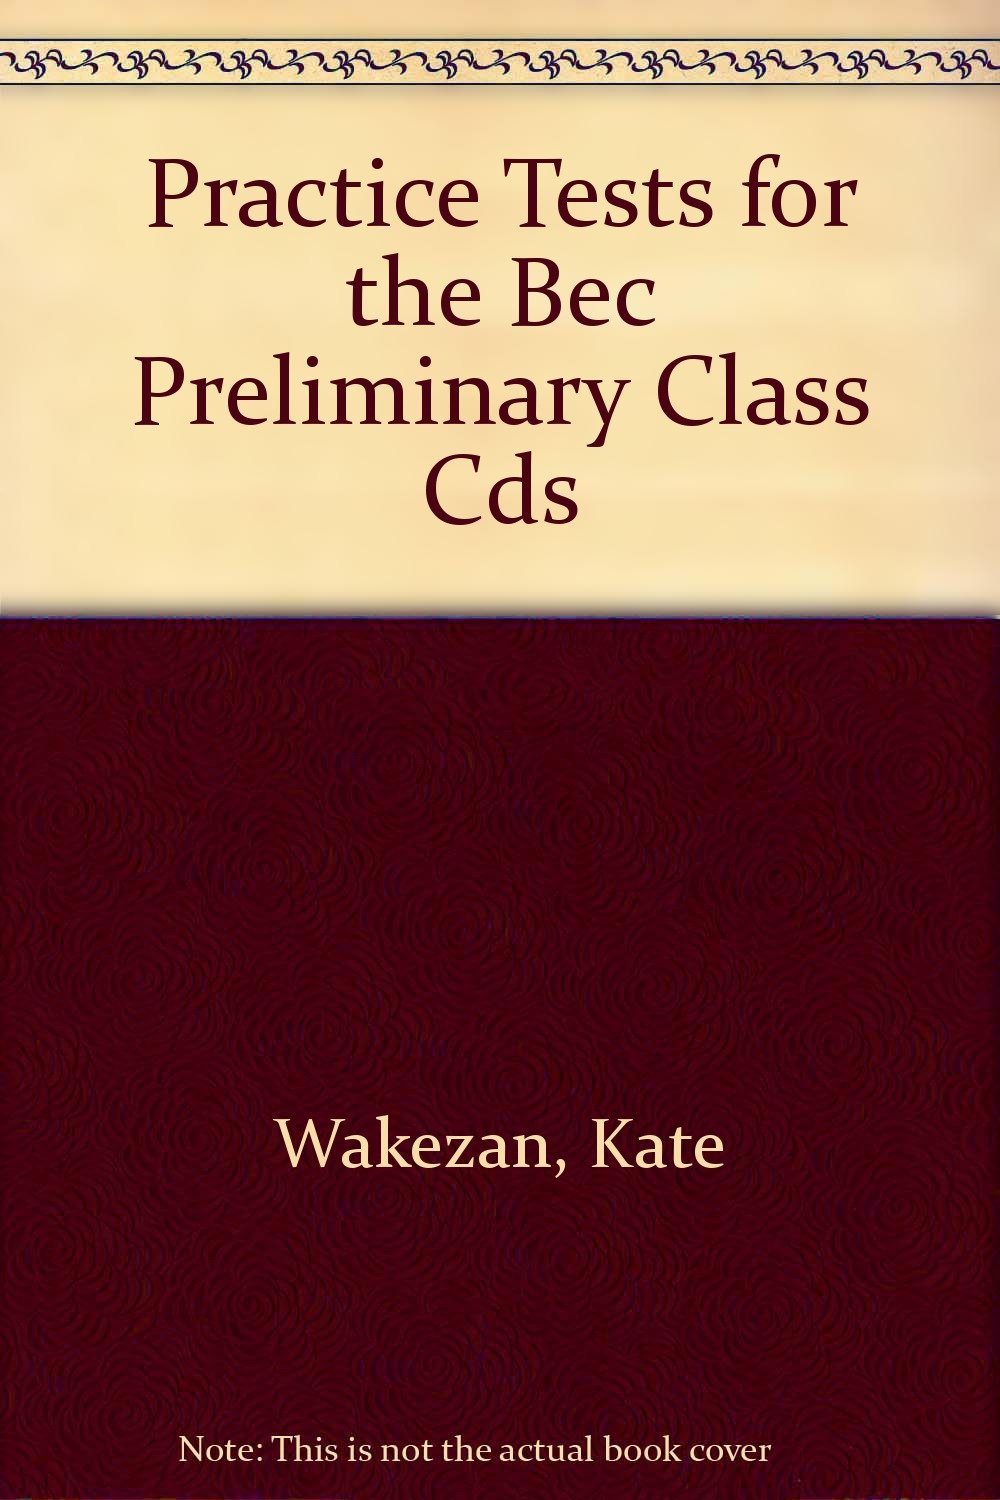 Practice Tests for the Bec Preliminary Class Cds PDF